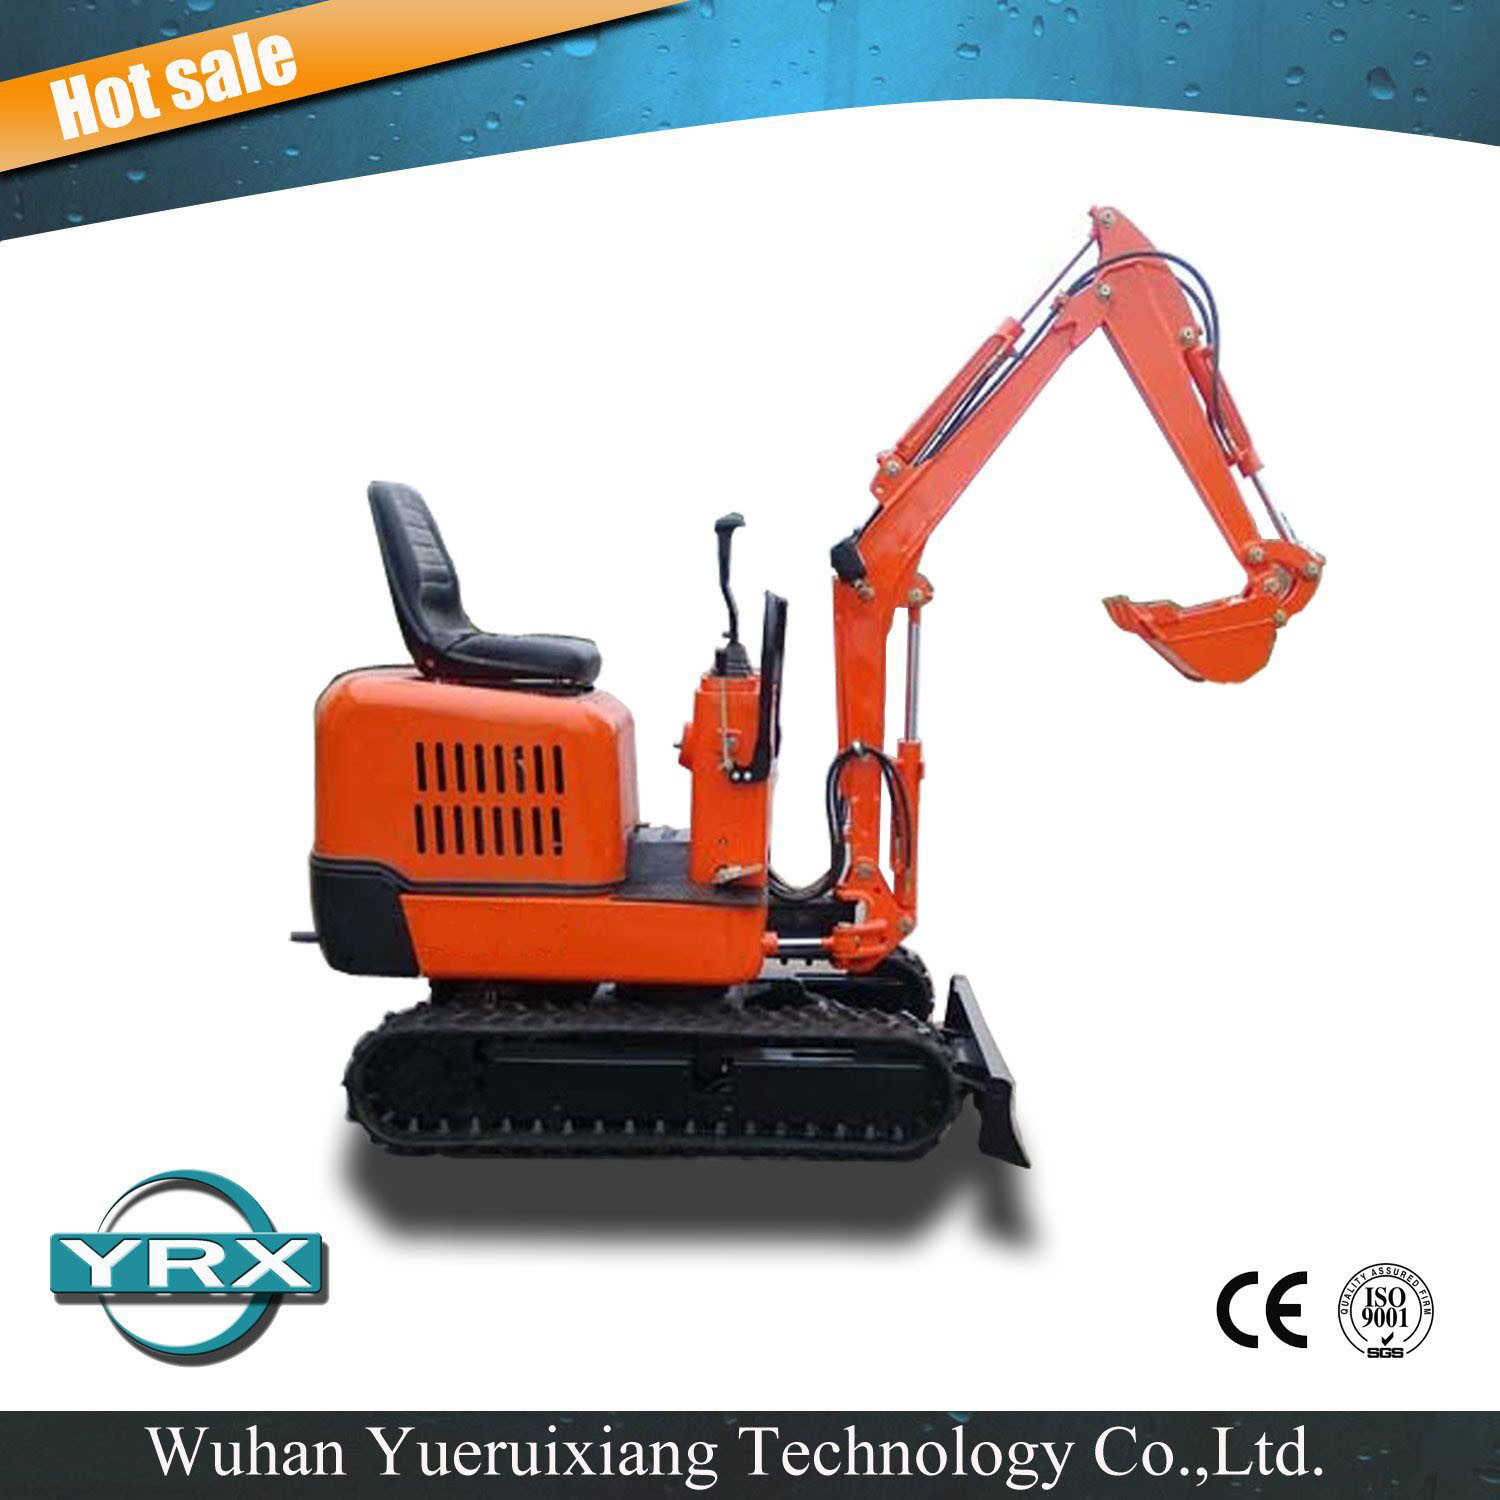 Ce Approved 1000kg Yrx10 Mini Excavator for Sale